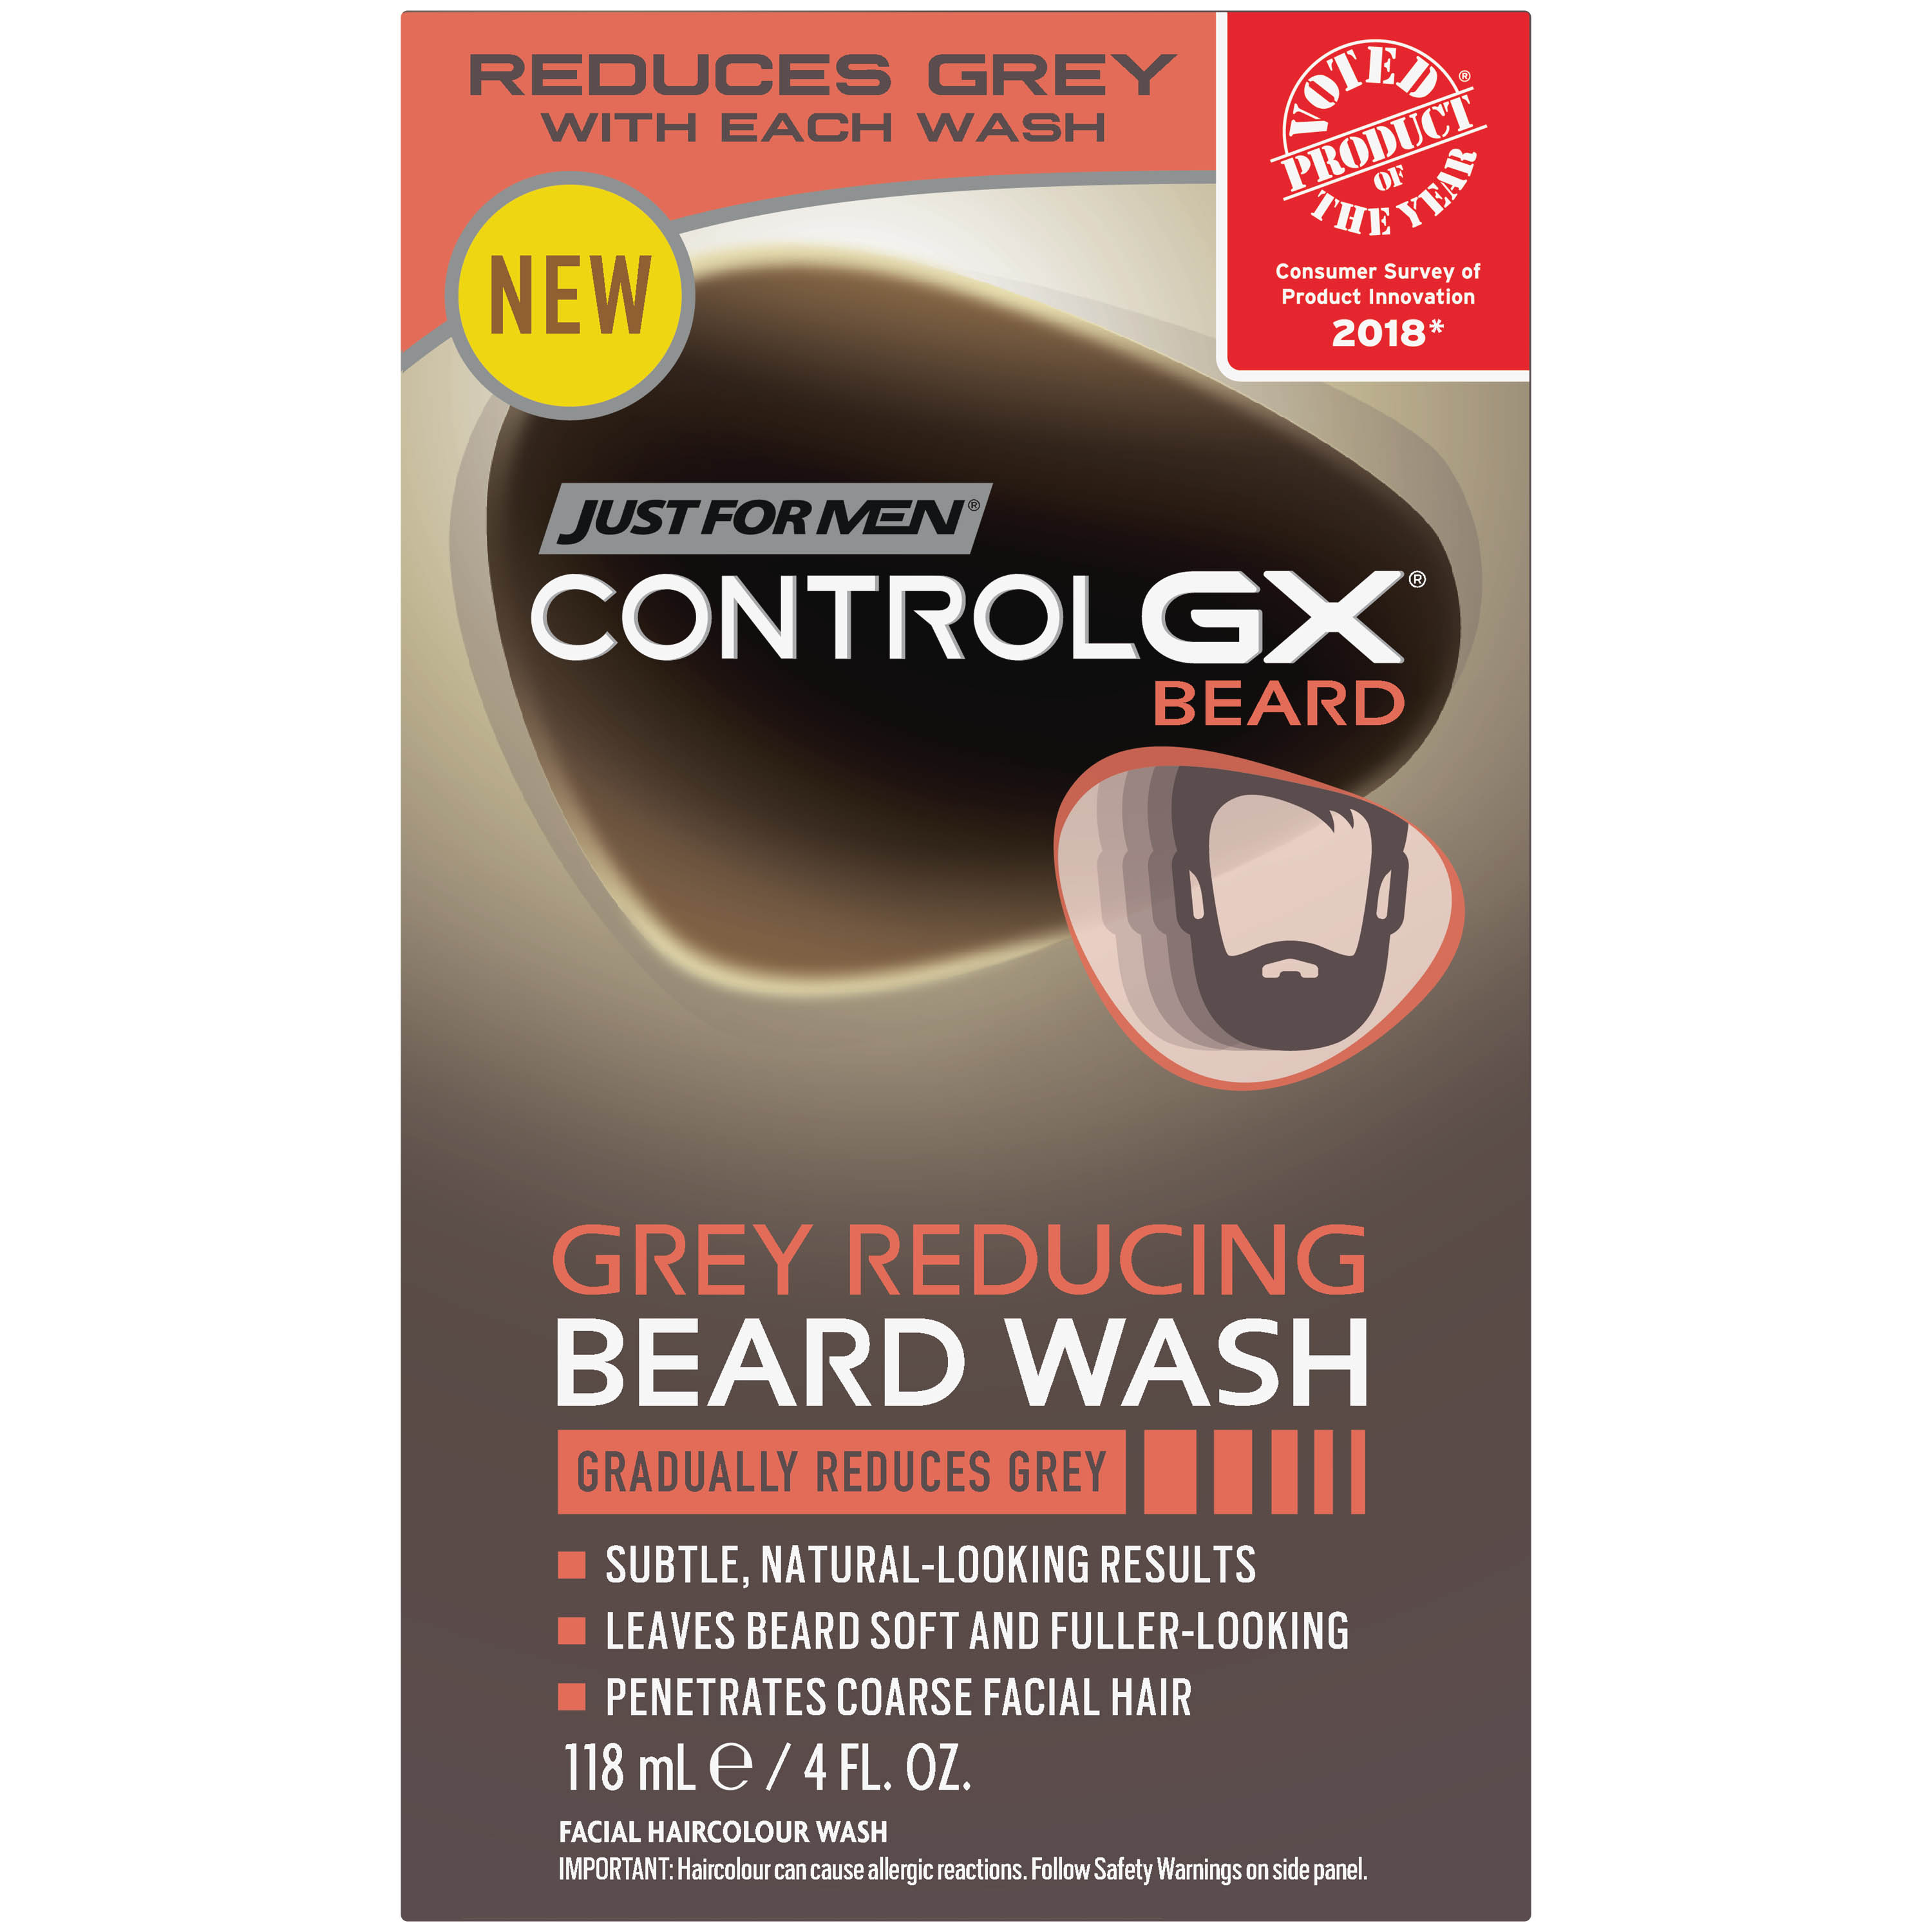 Just for Men Control GX, Grey Reducing Beard Wash and Conditioner that gradually reduces grey in facial hair, 4 Fluid Ounces.